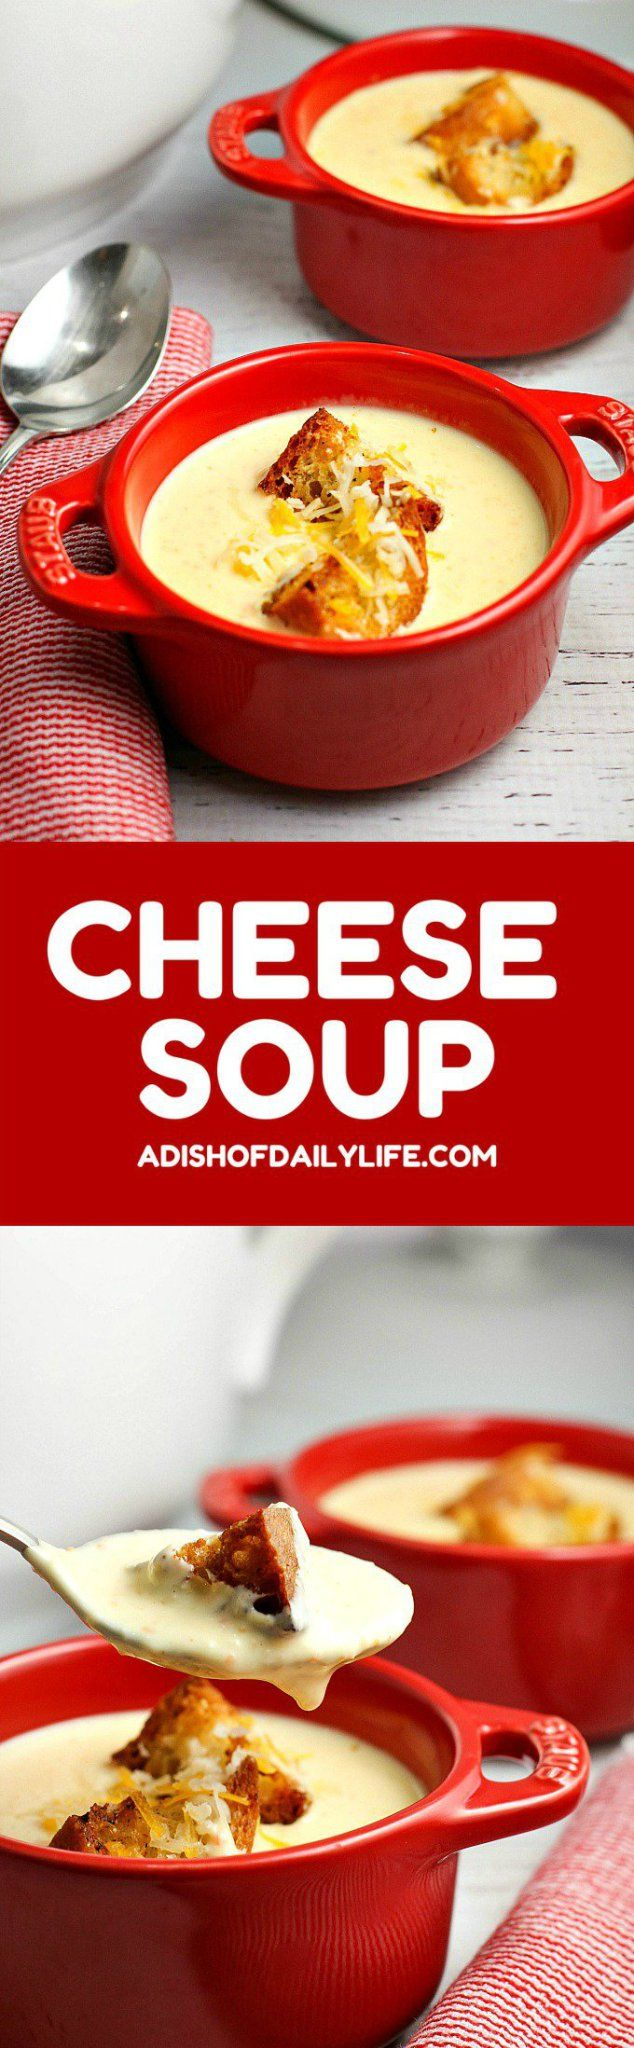 Inspired by the Driskill Hotel's famous Cheese Soup, this rich soup recipe has out-of-this world flavor and is ready in under 30 minutes! This is a MUST TRY!